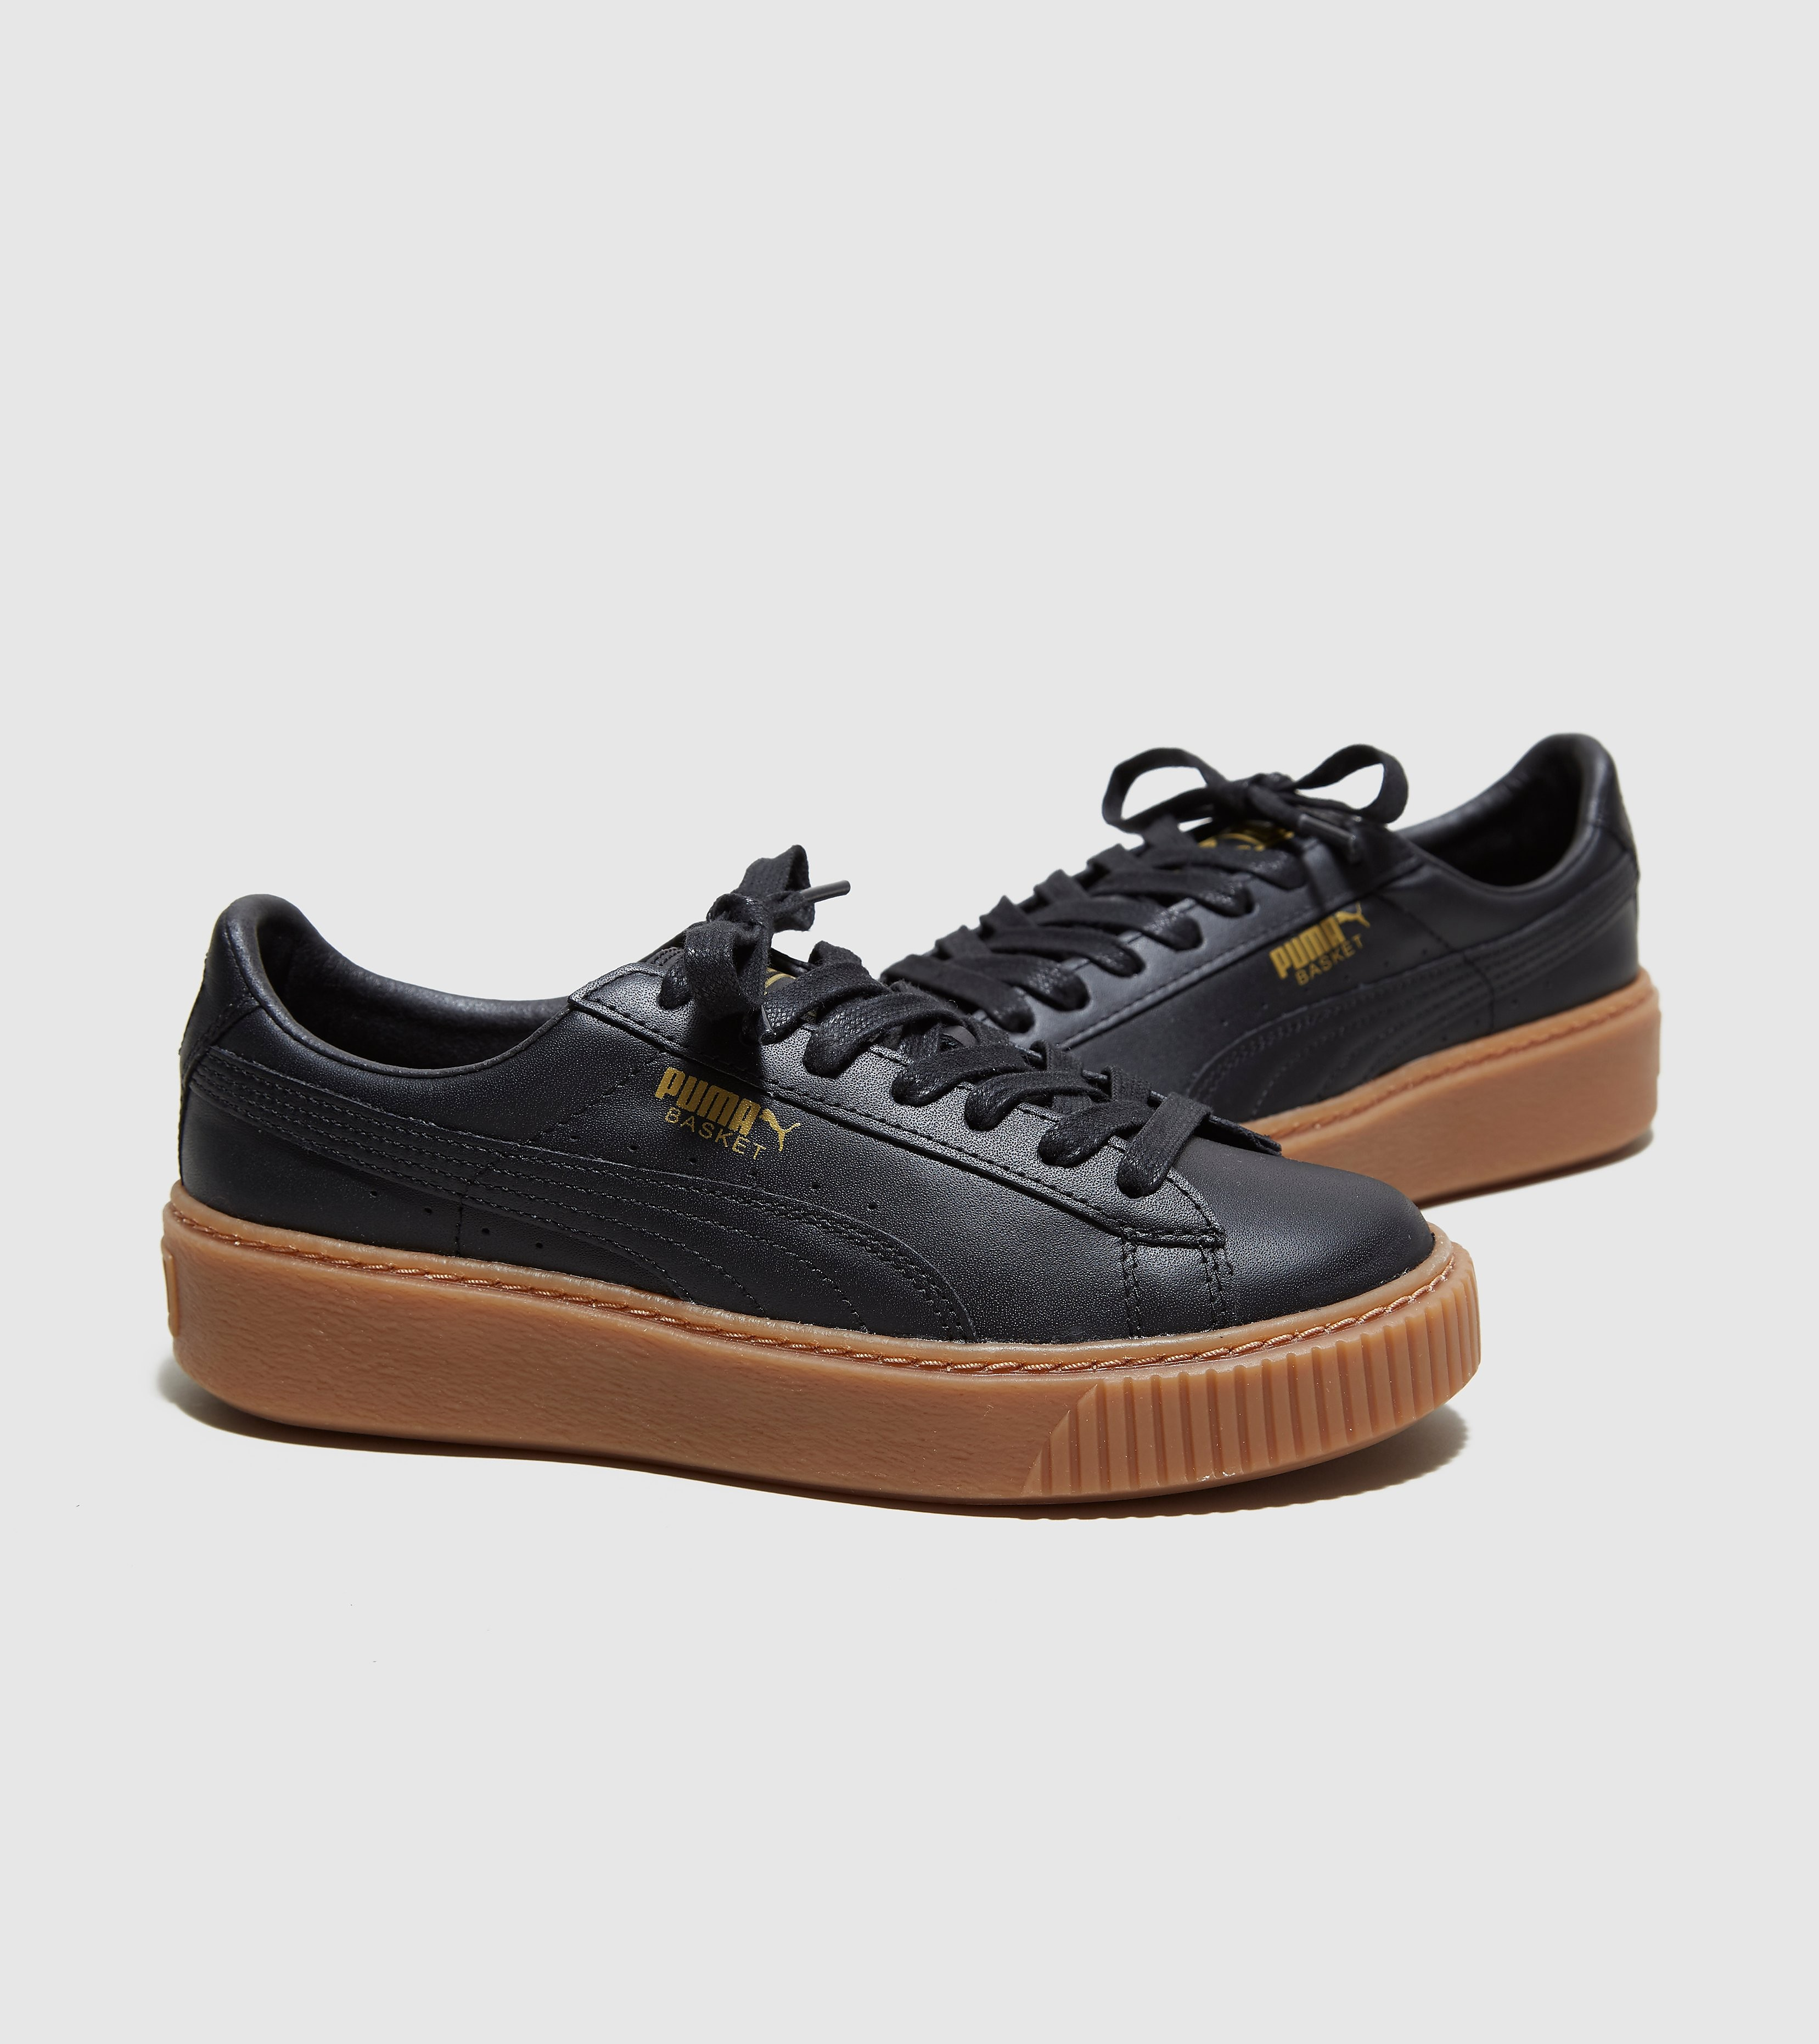 PUMA Basket Platform Leather Women's